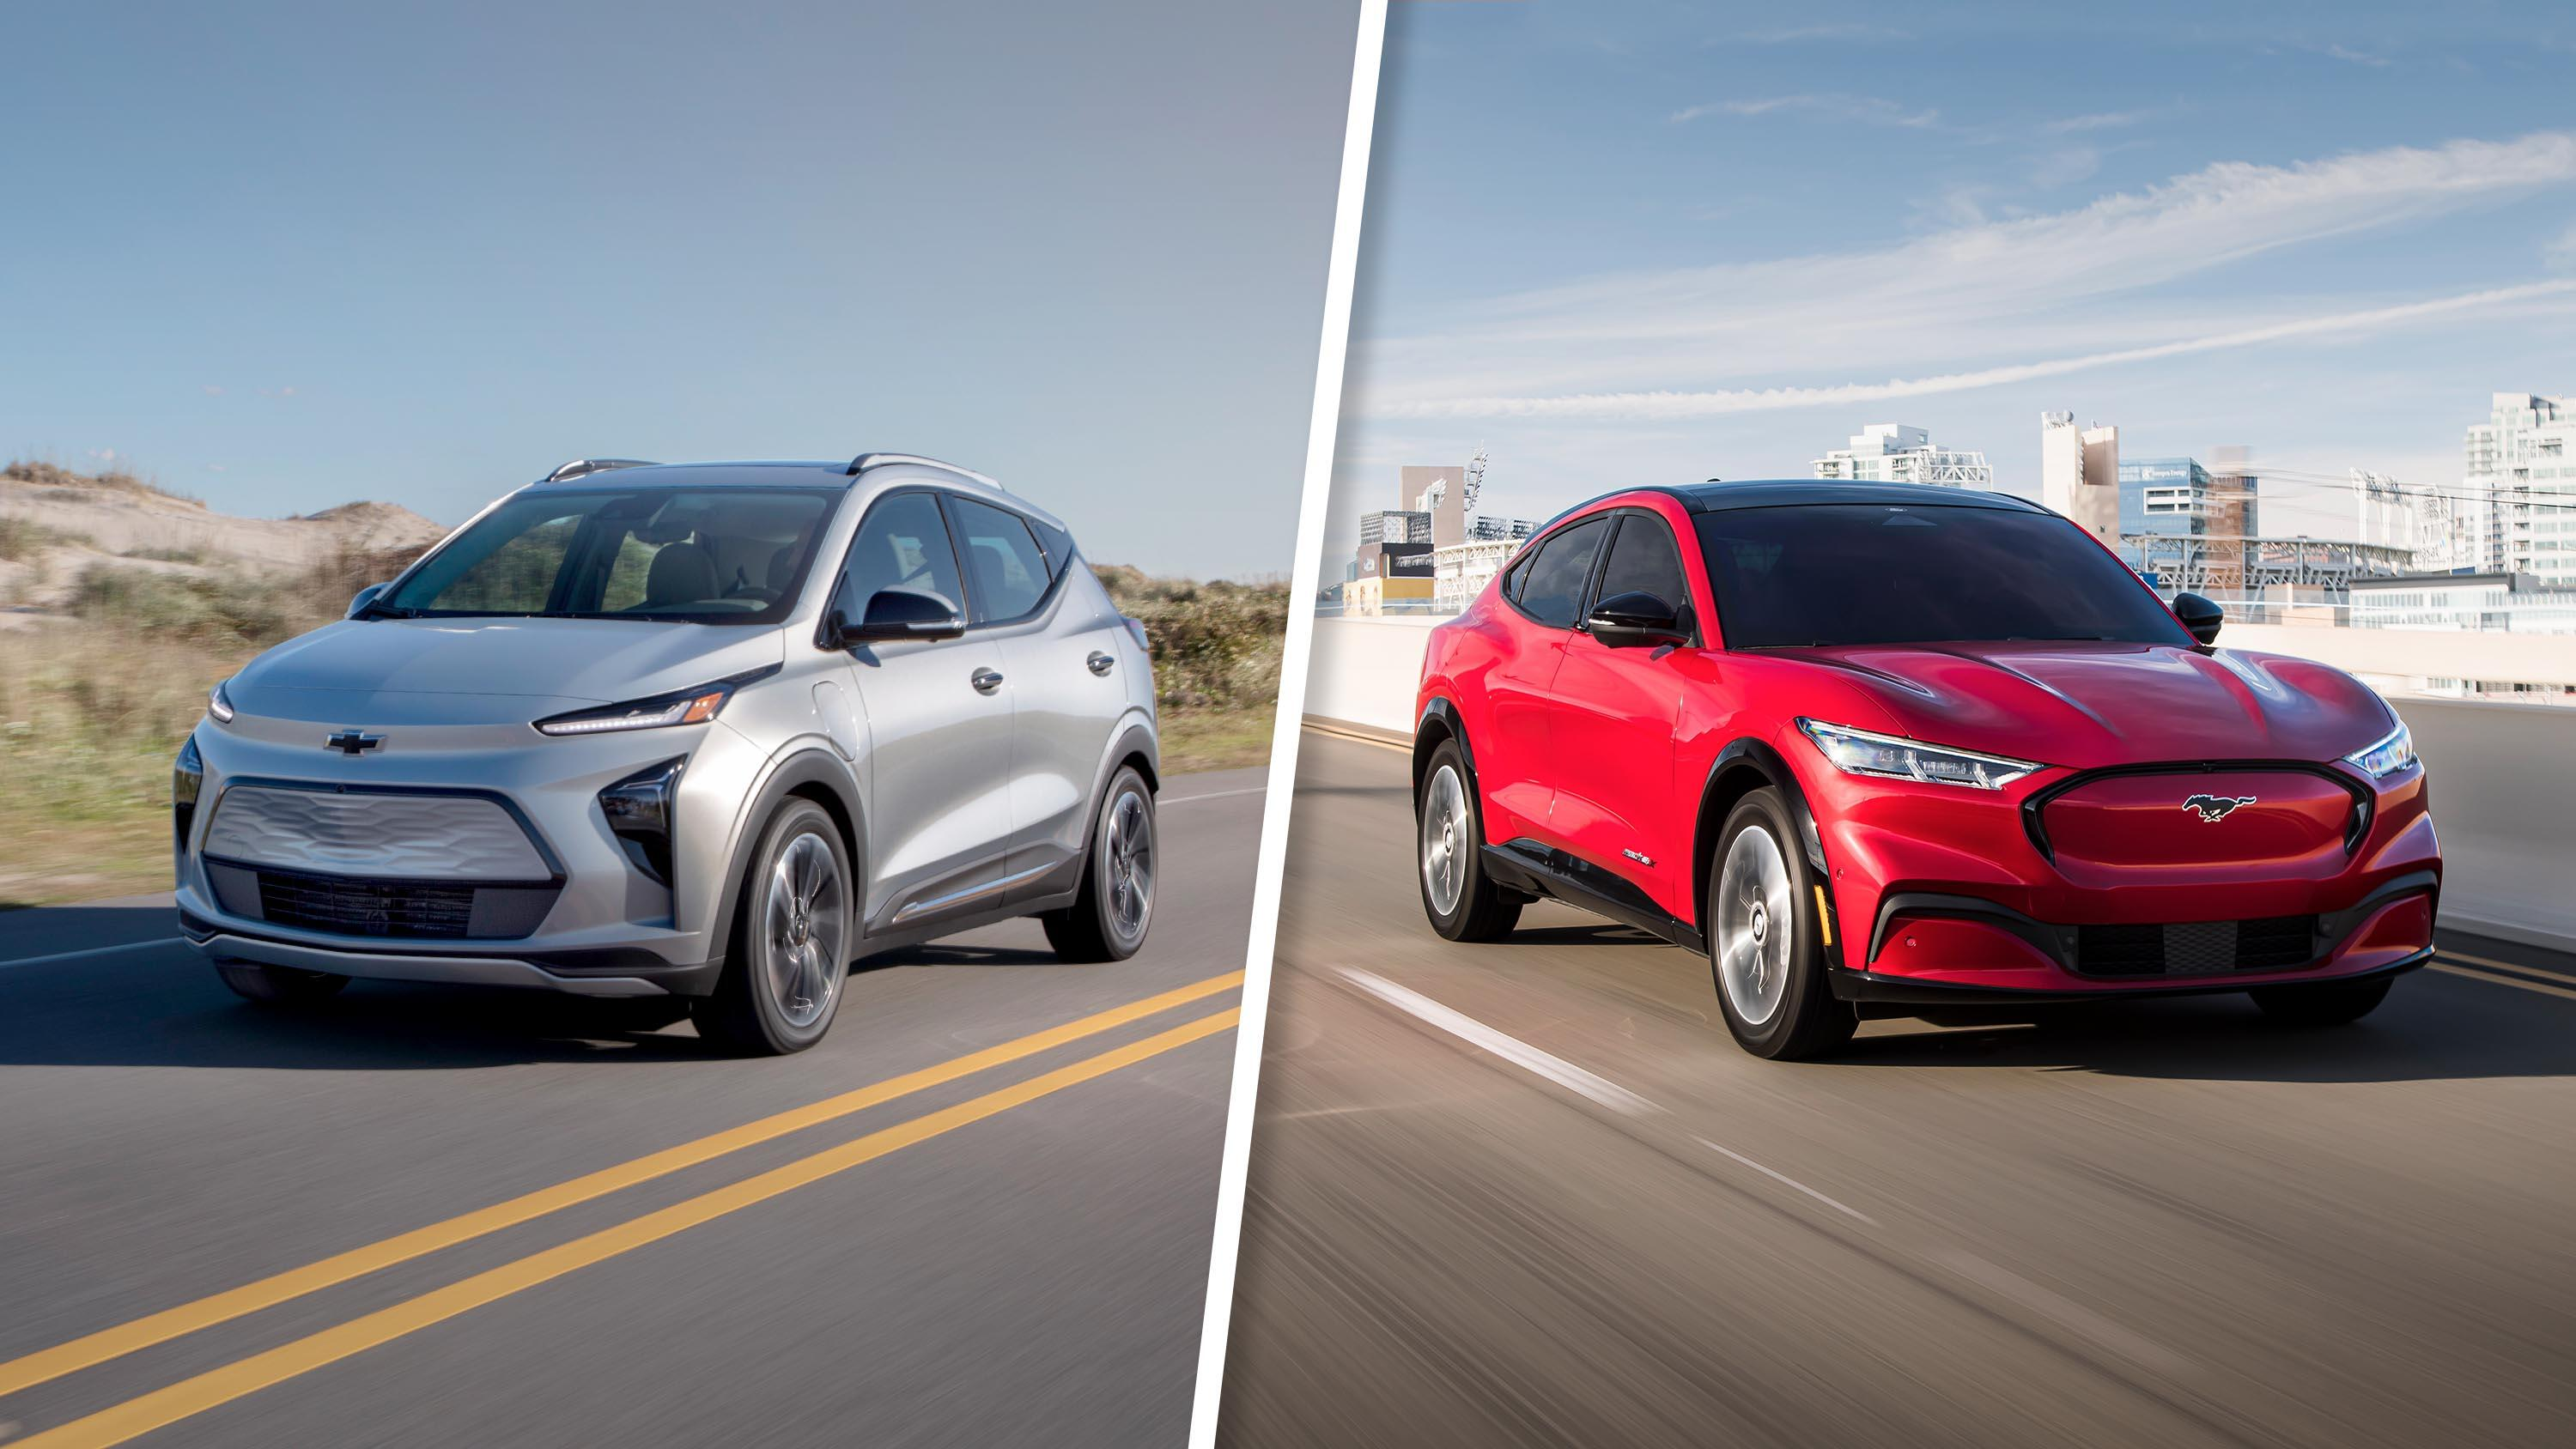 Video: 2022 Chevy Bolt EUV vs. Mustang Mach-E: Electric SUVs go head-to-head